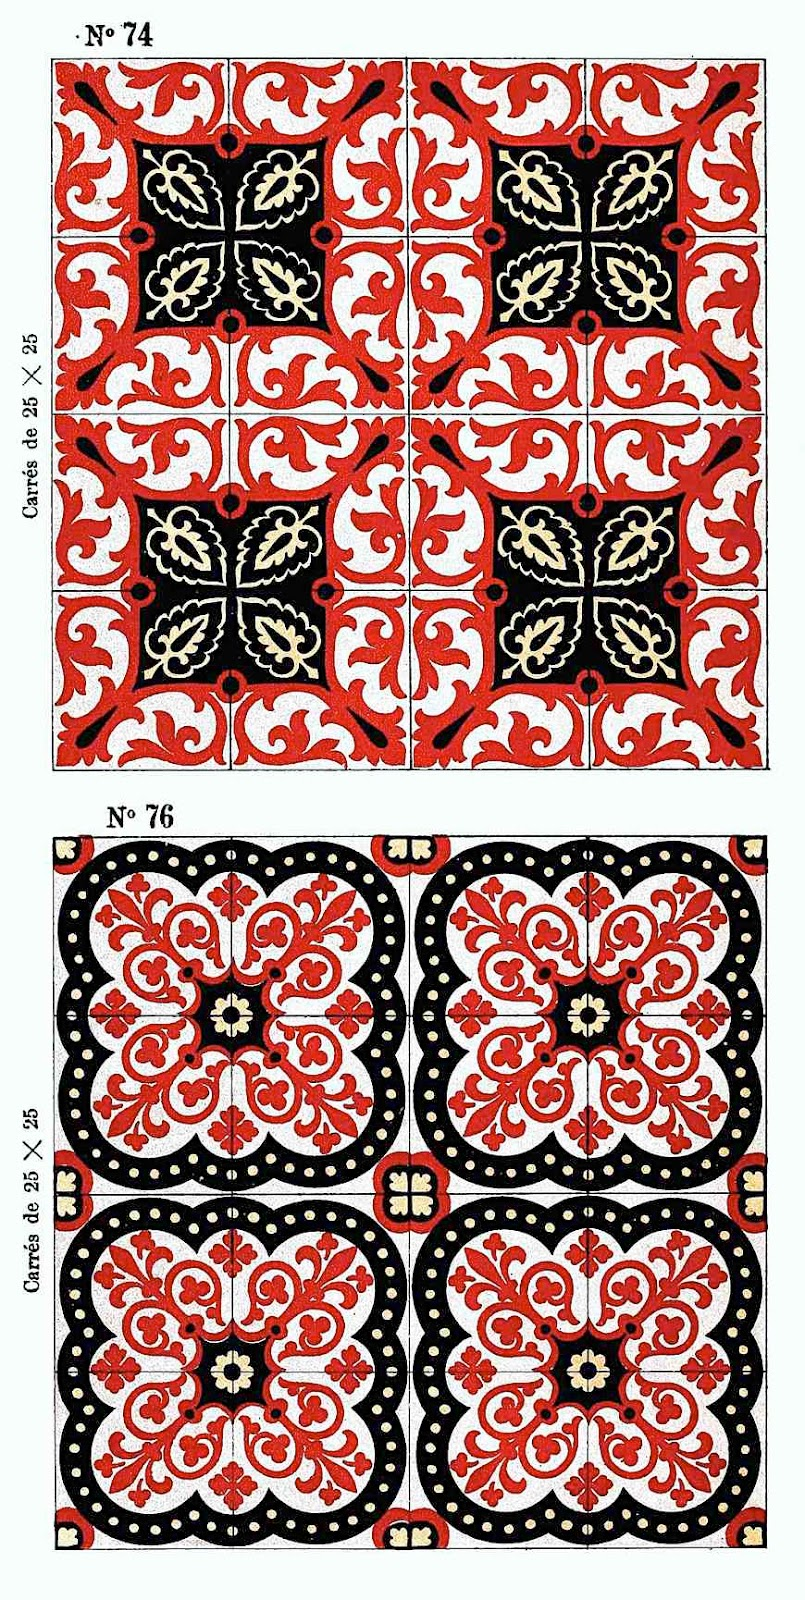 a color image of 1890 floor tiles in red and white